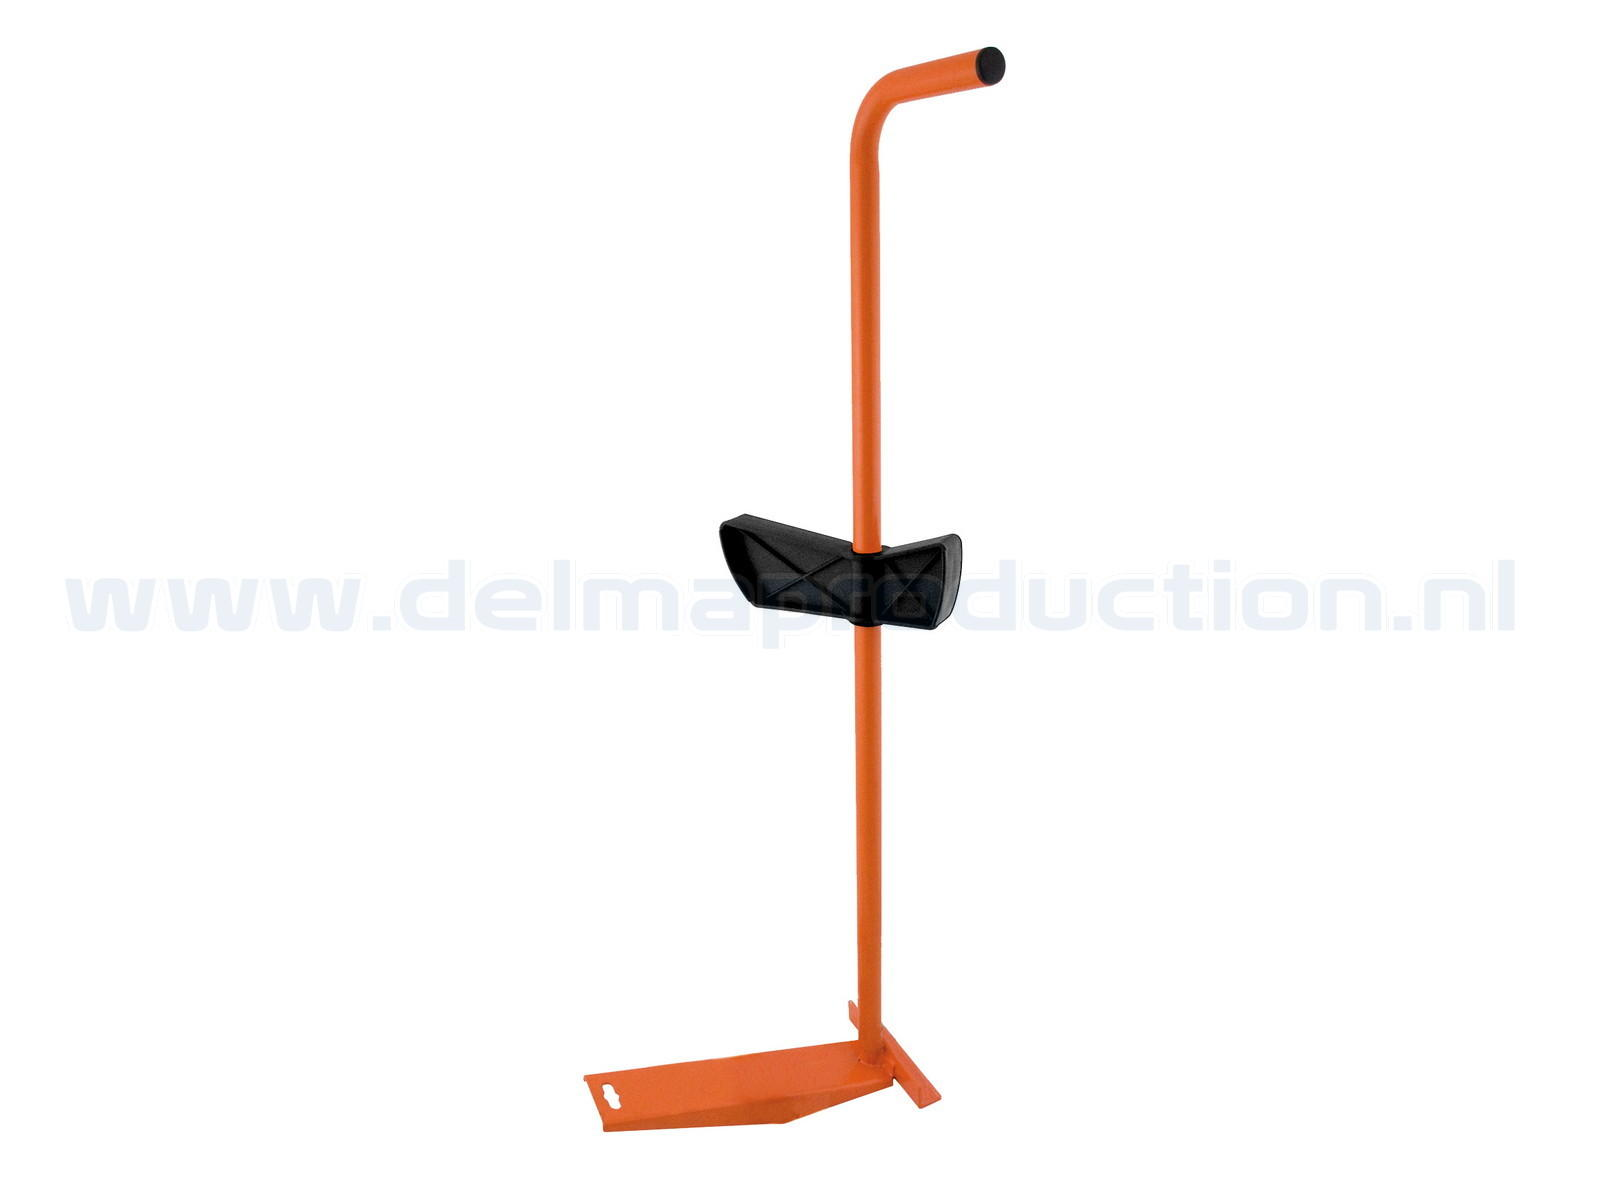 Plasterboard Lifter and Holder (1)